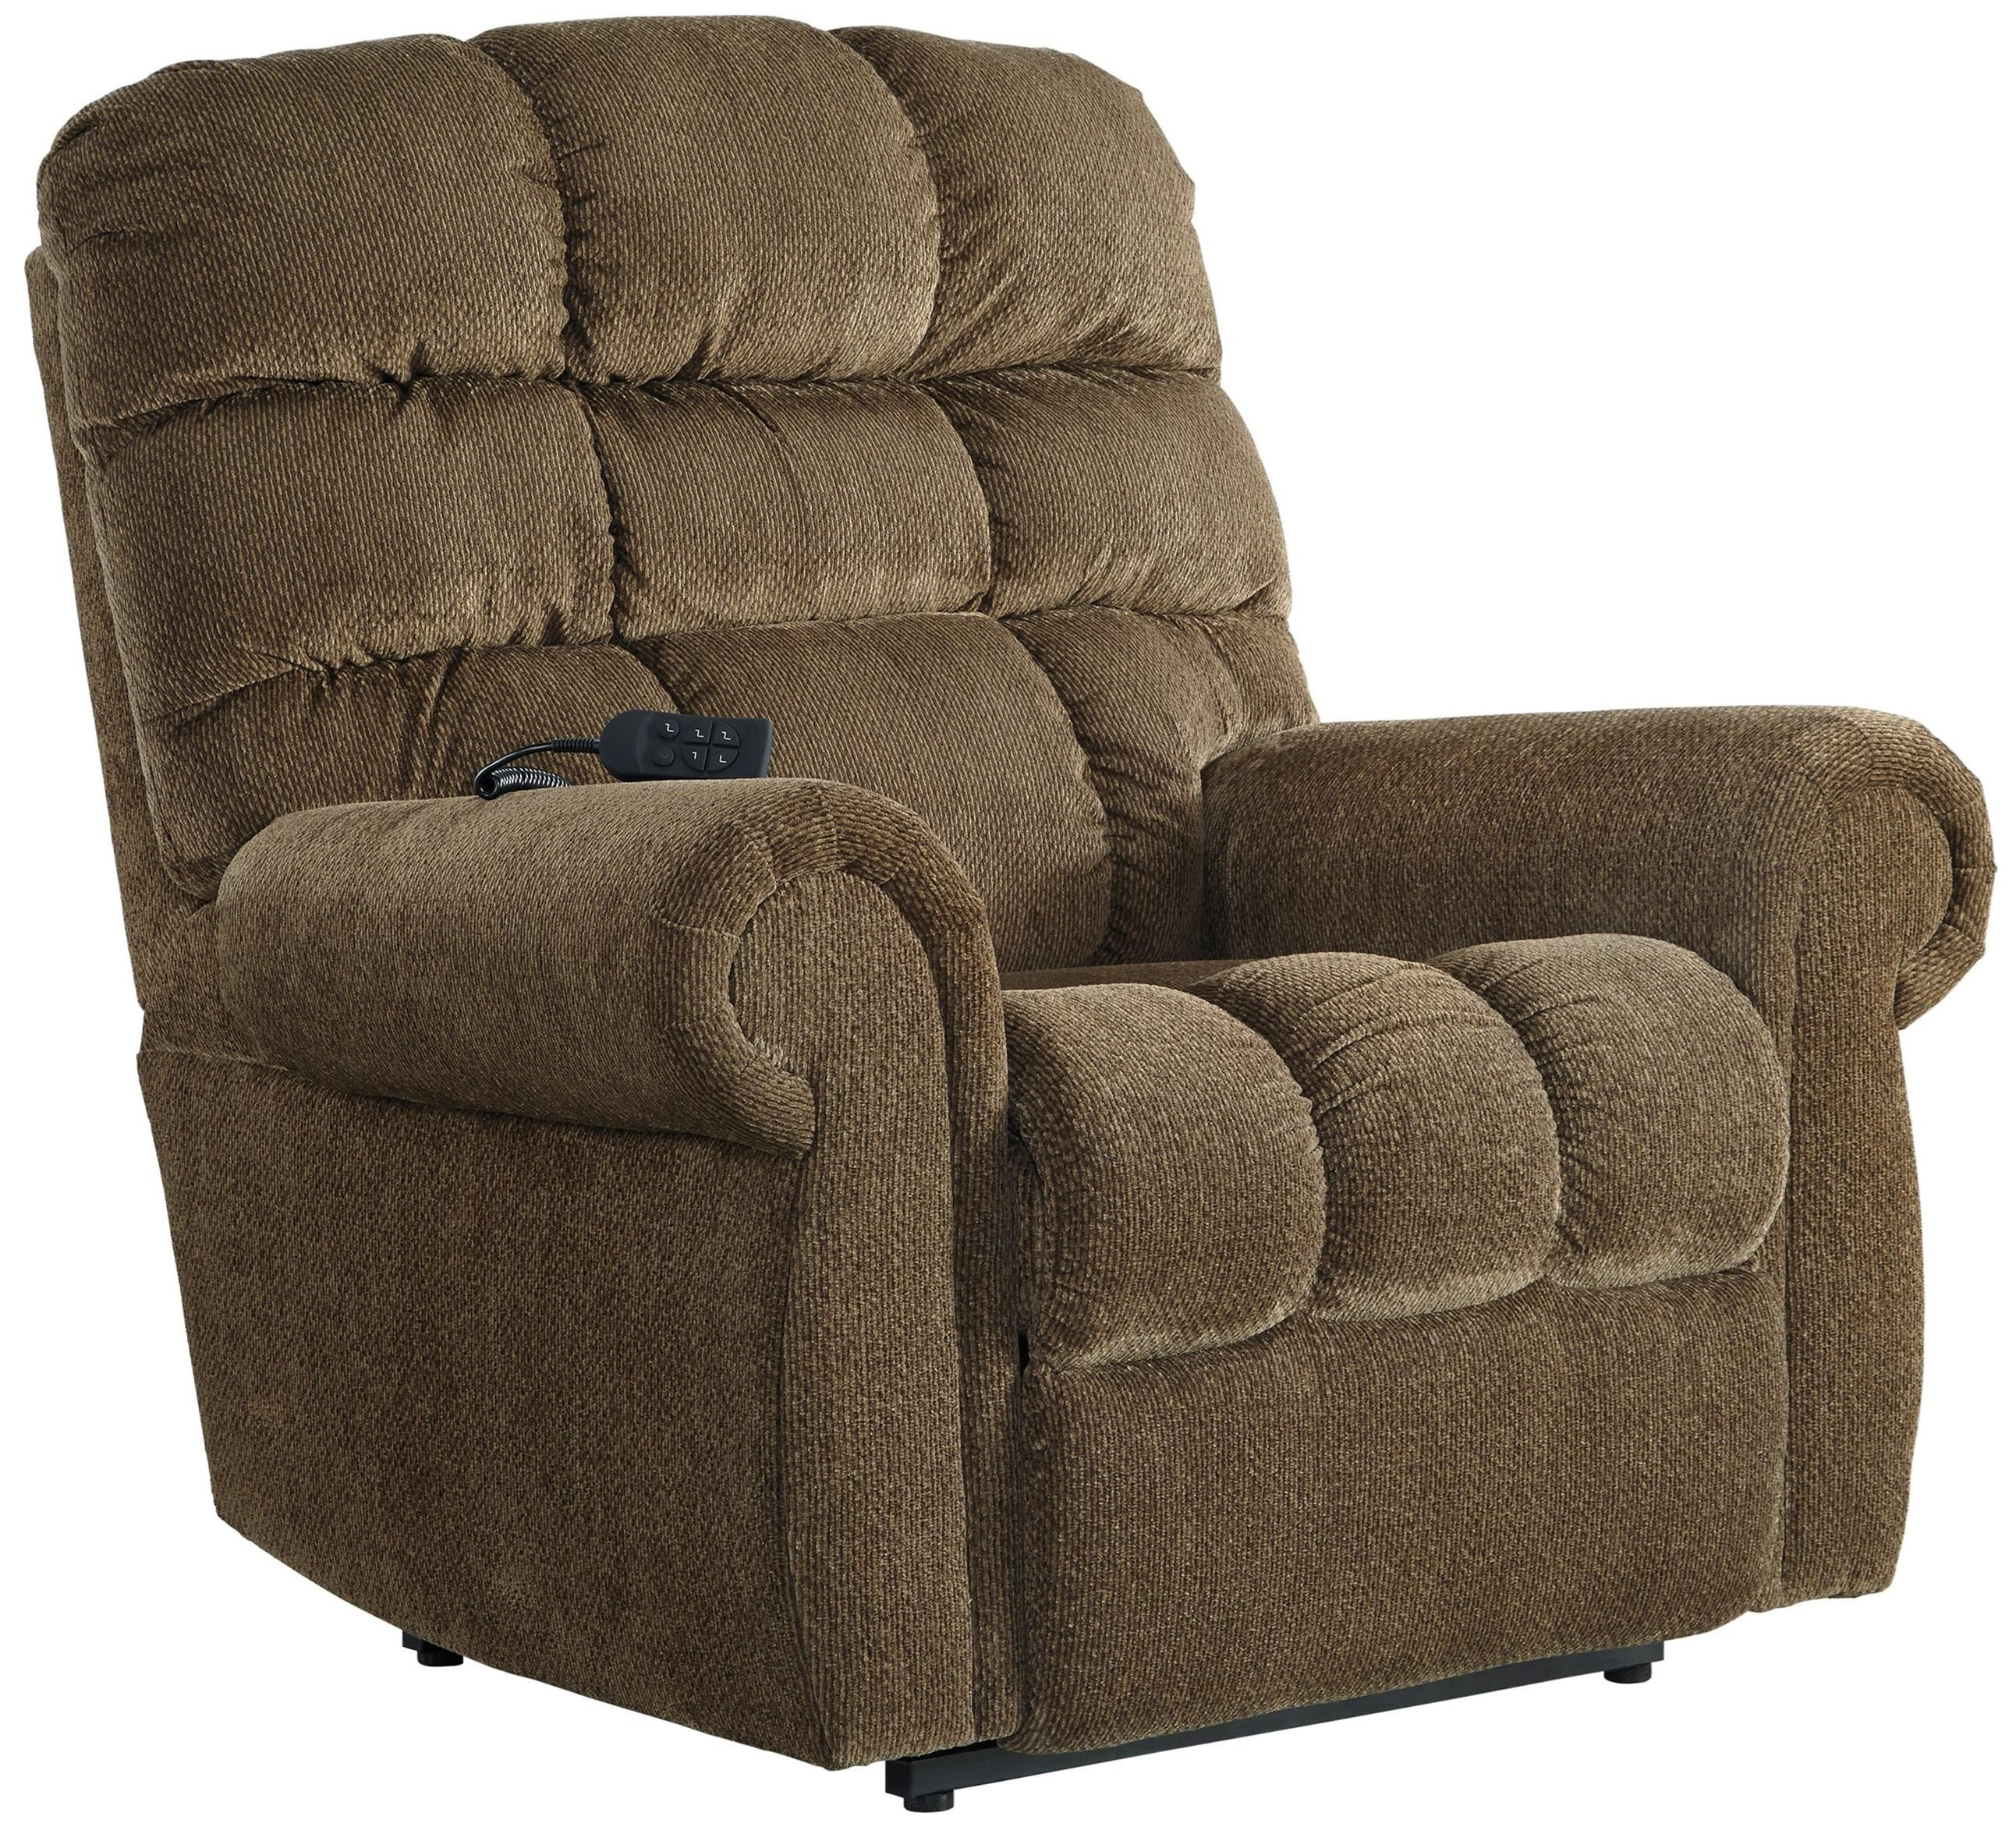 Lift Chairs Recliners Signature Design By Ashley Ernestine 9760212 Power Lift